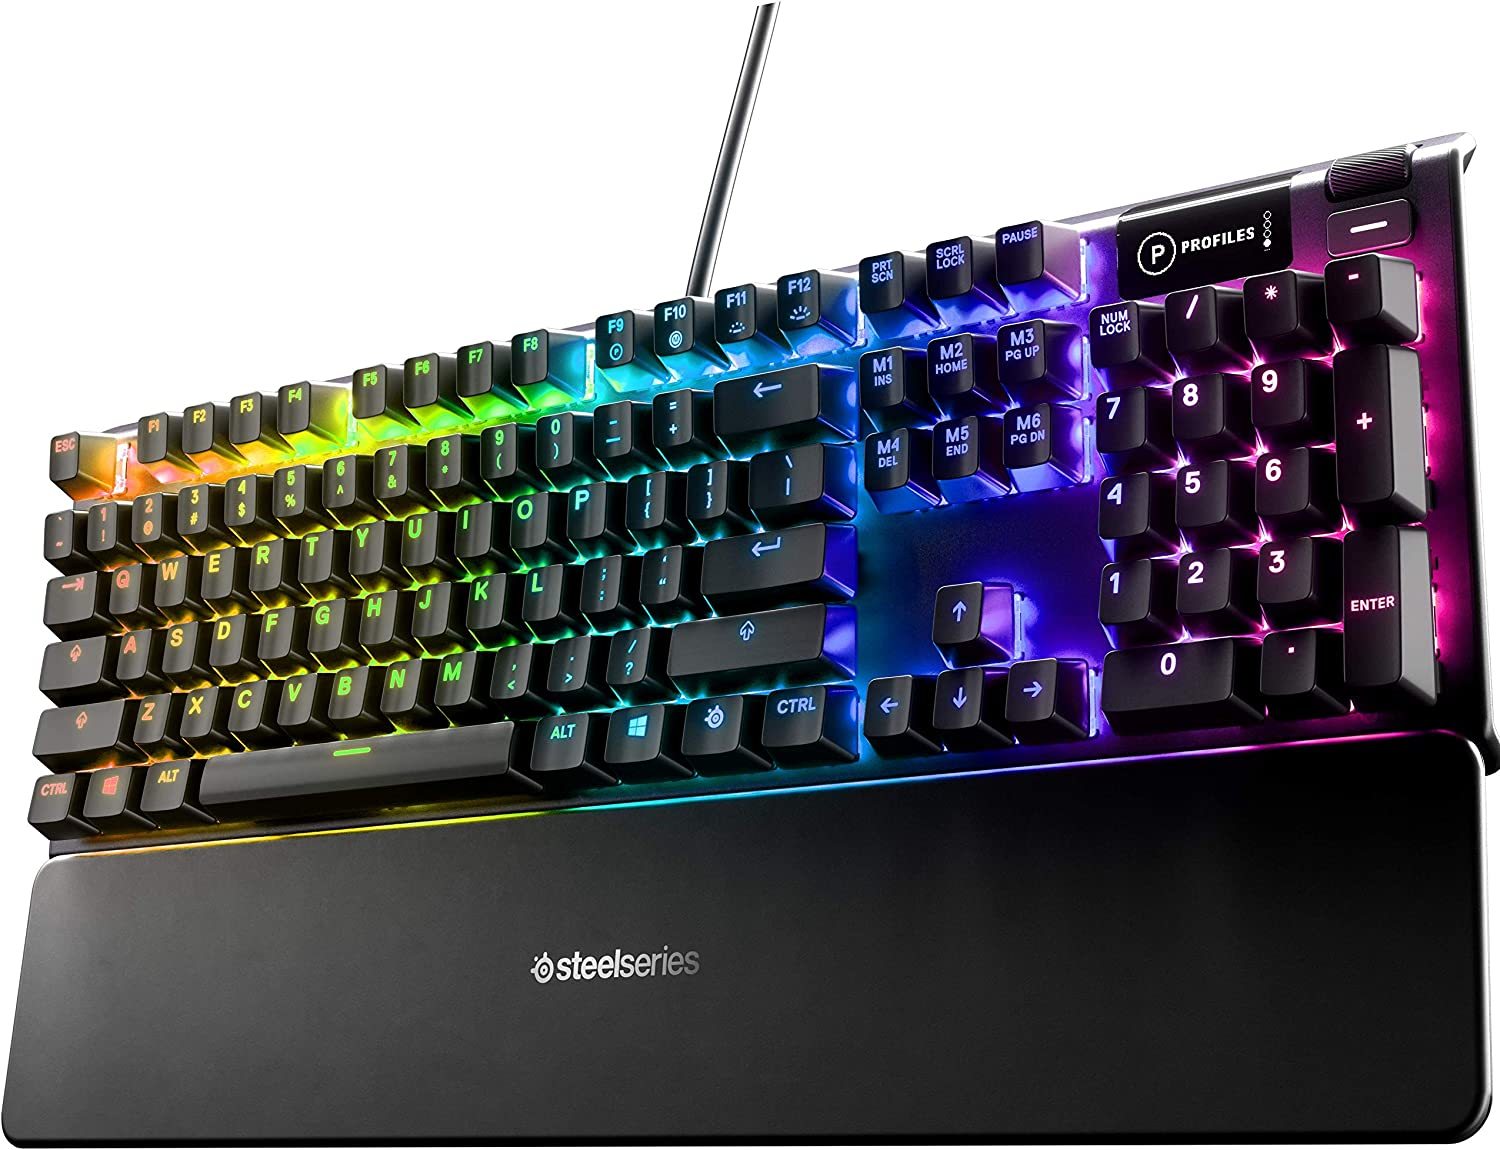 SteelSeries Apex 5 Hybrid Mechanical Gaming Keyboard – Per-Key RGB Illumination – Aircraft Grade Aluminum Alloy Frame – OLED Smart Display (Hybrid Blue Switch)